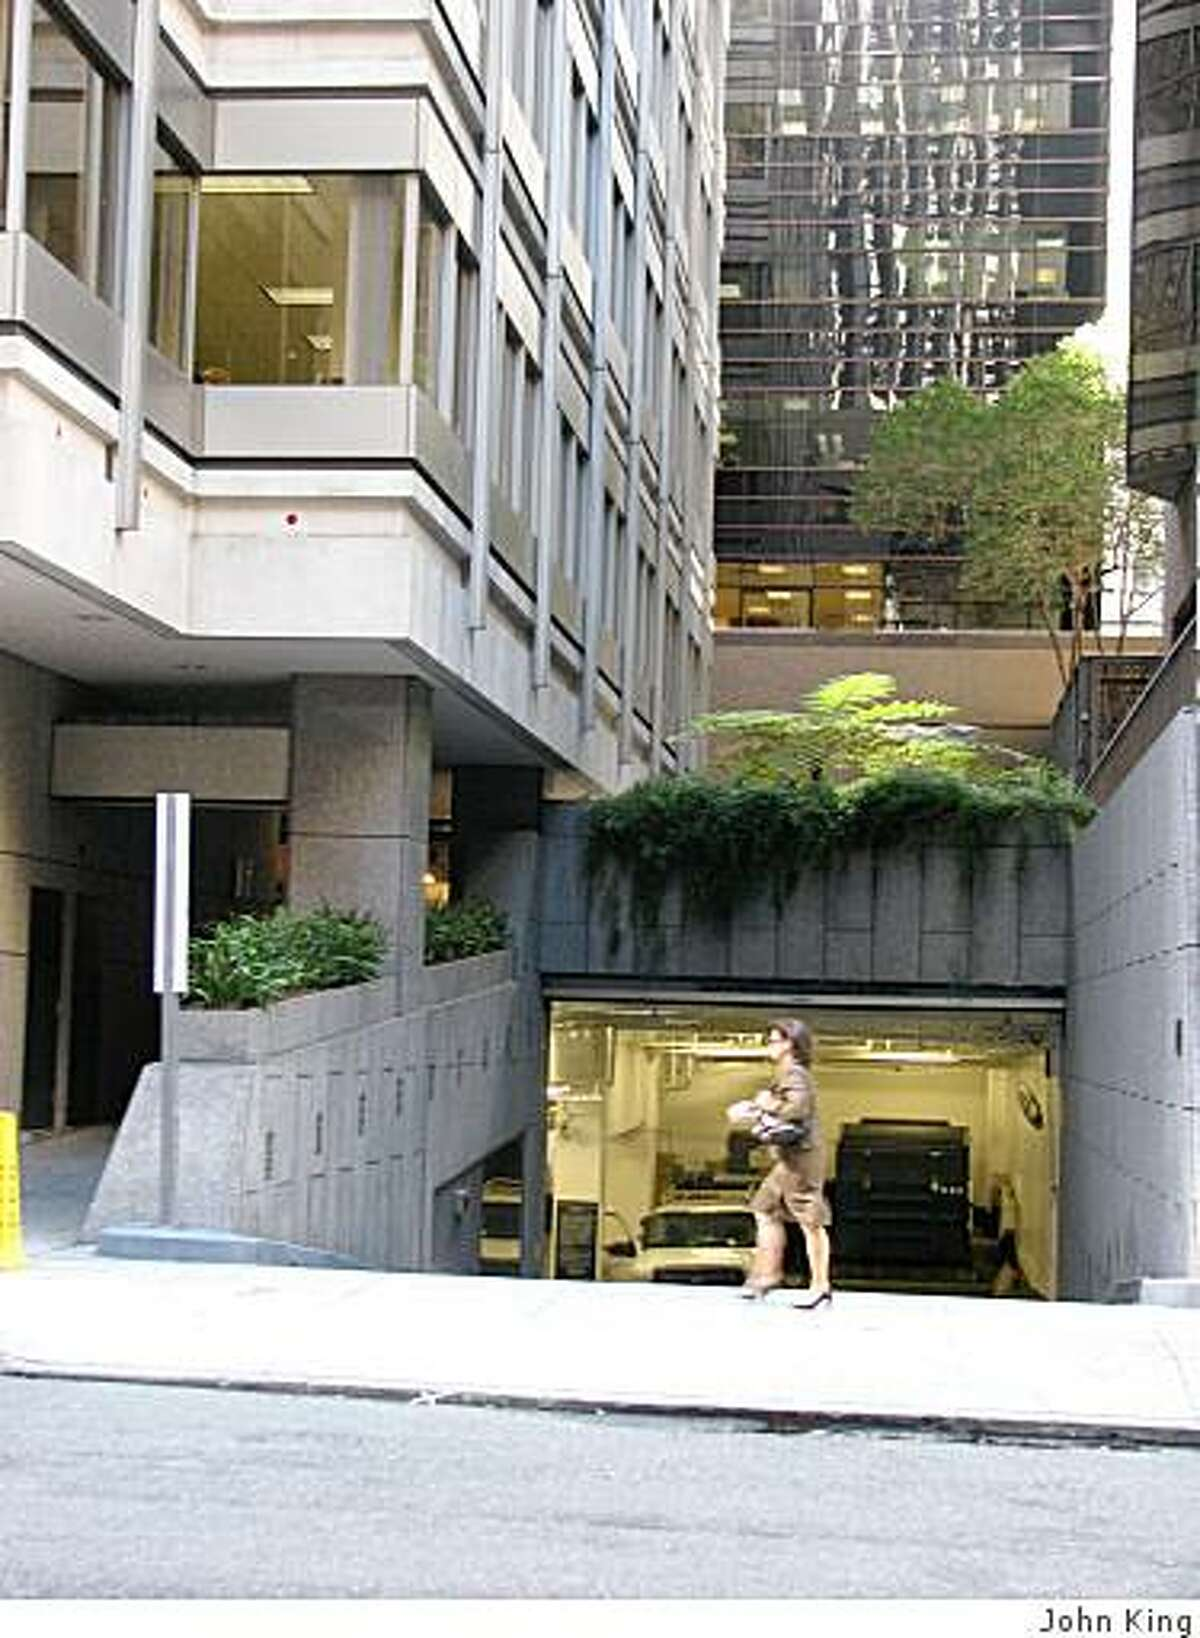 This small plaza behind the 100 Pine office tower is one of the urbane nooks of San Francisco's financial district. This photo shows the entrance from Front Street.